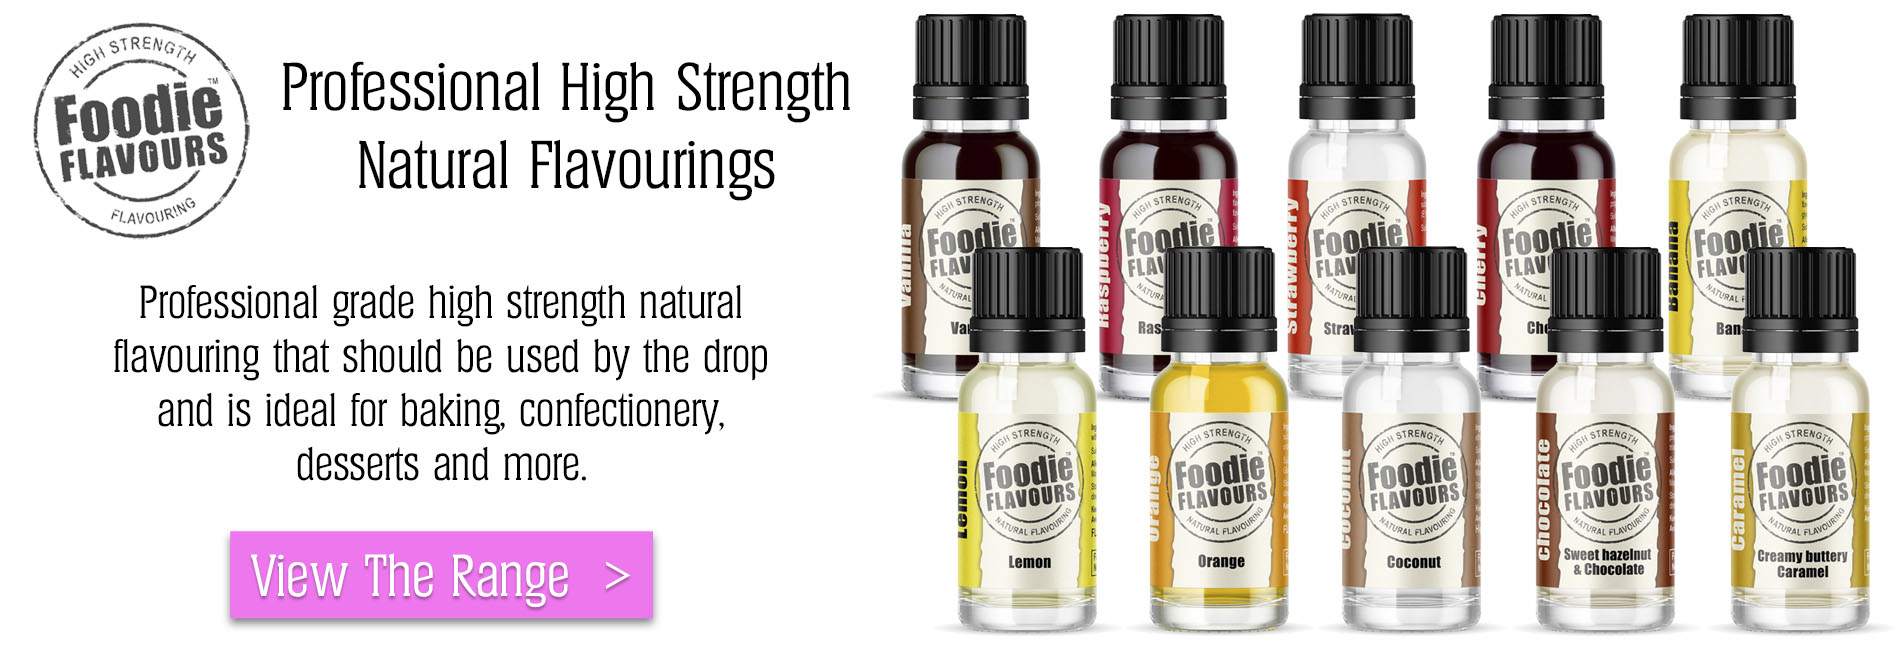 Professional High Strength Natural Flavourings